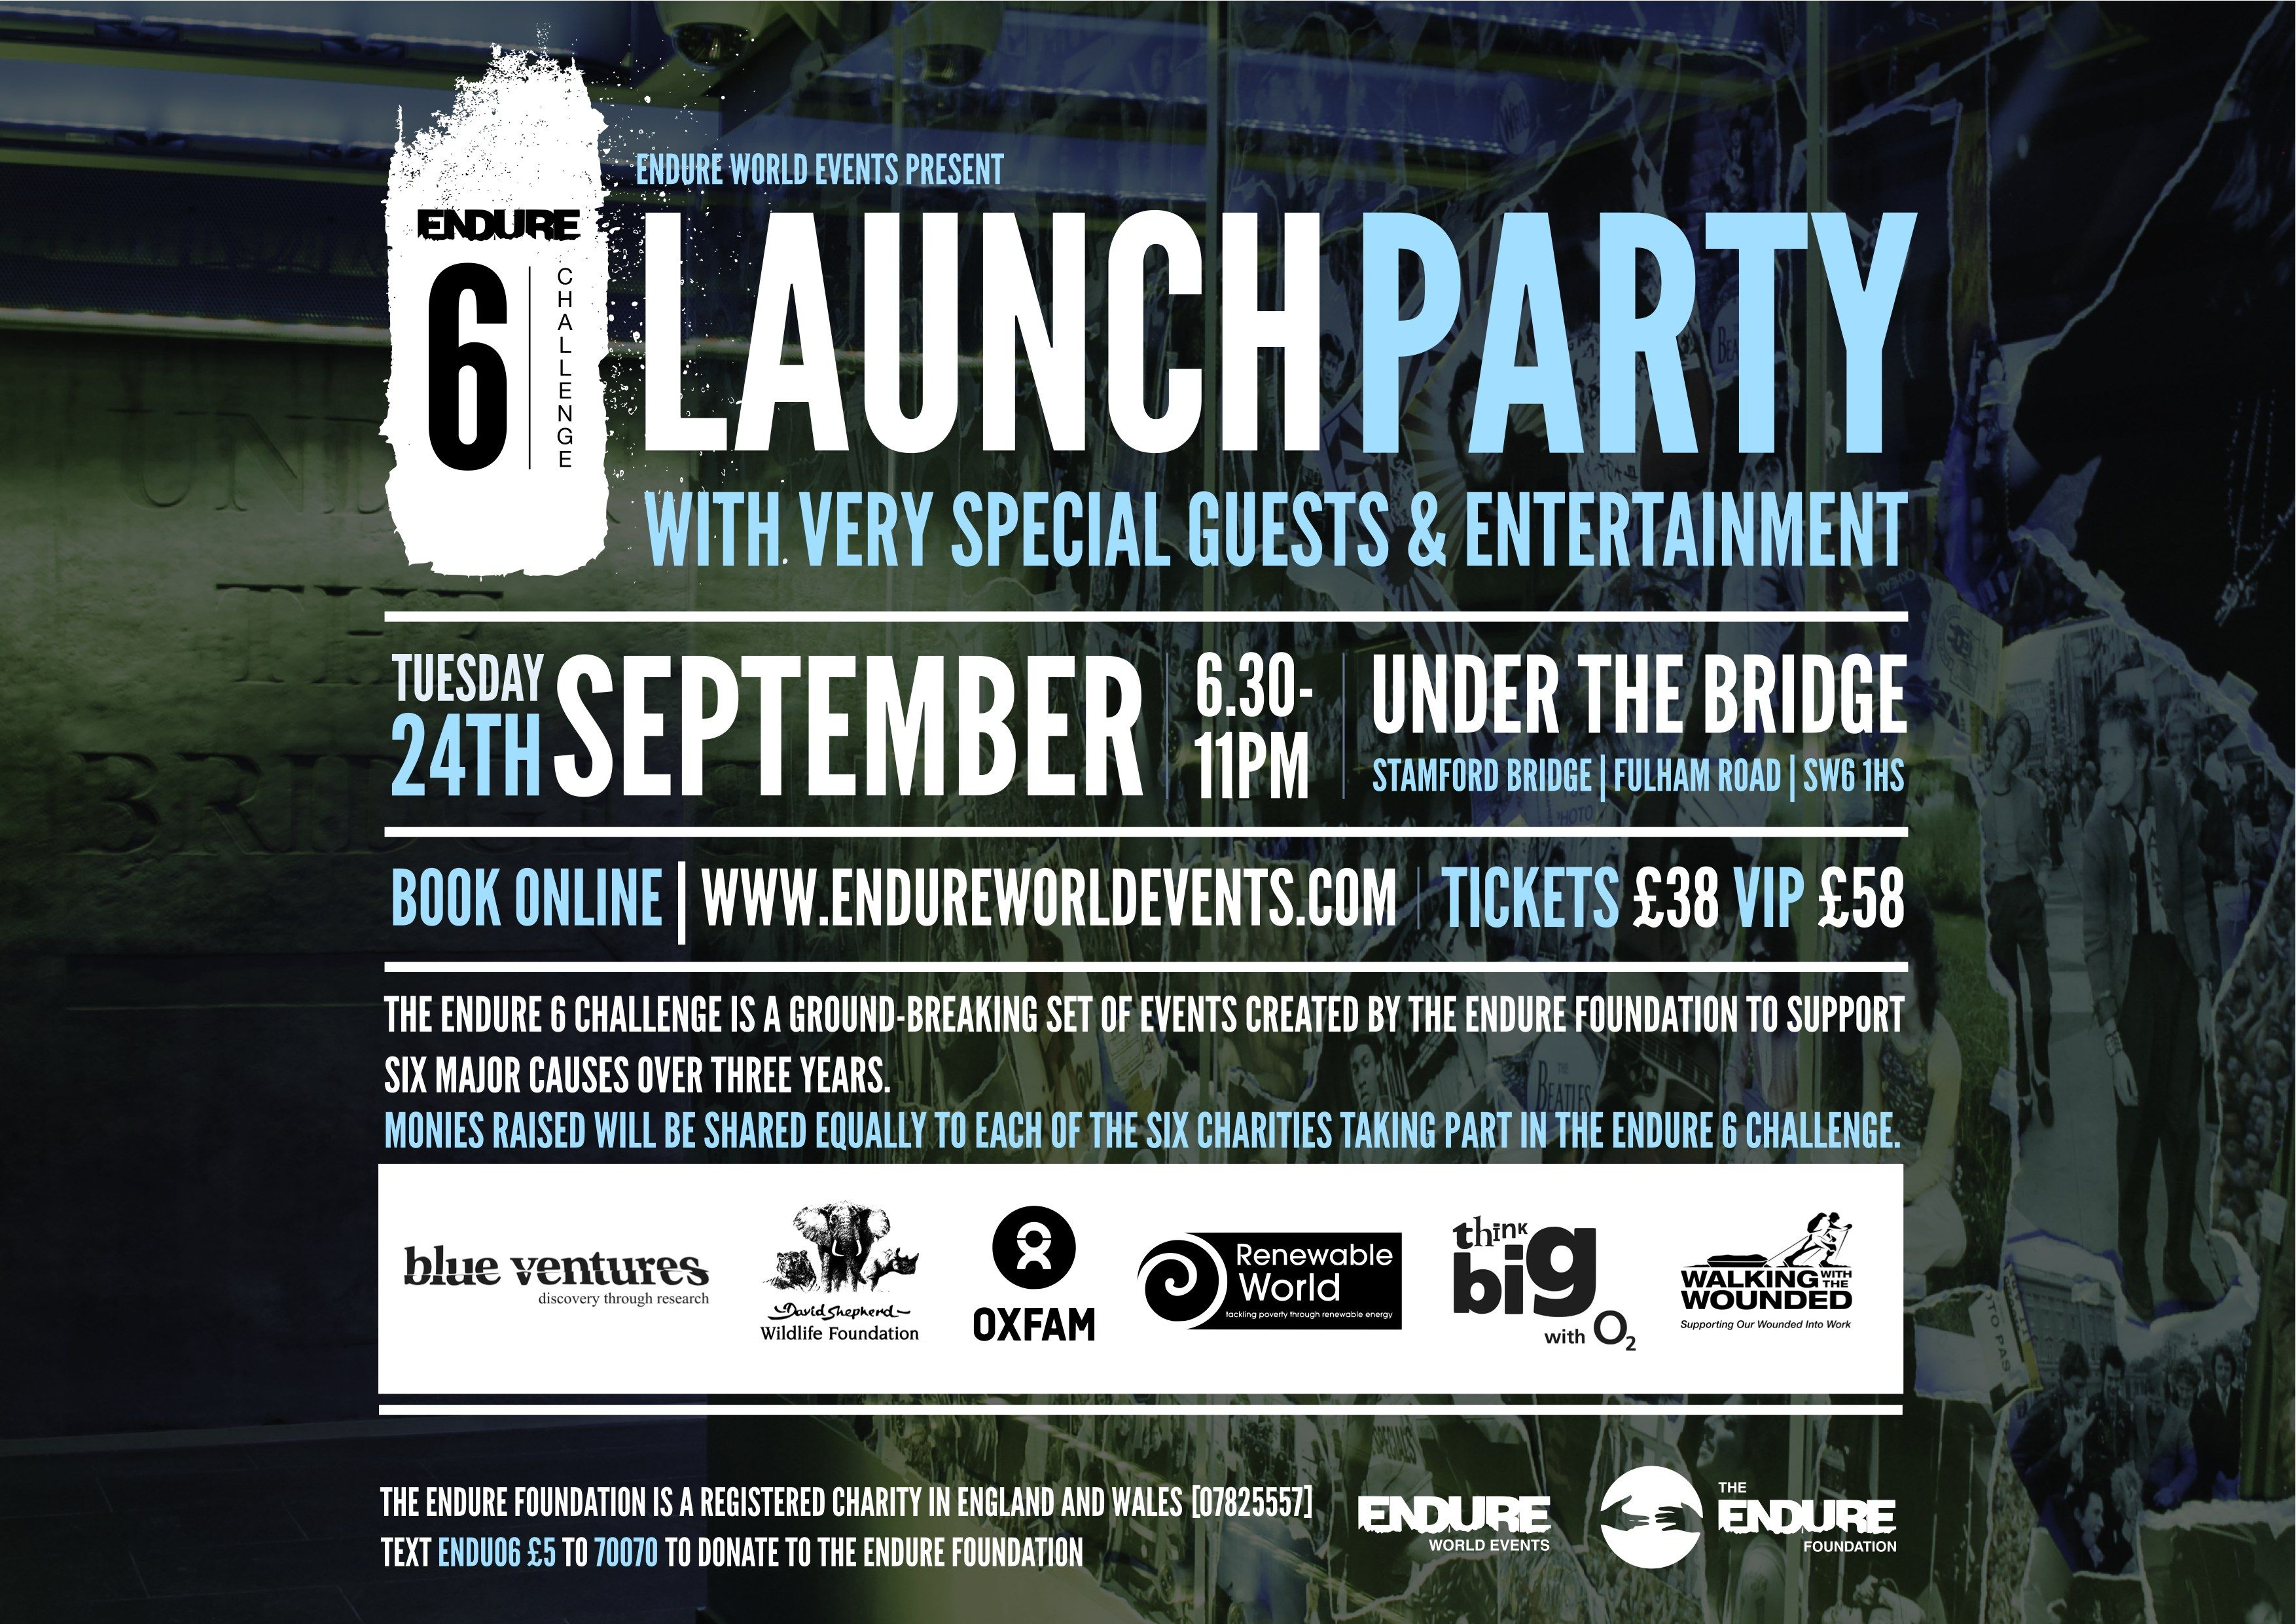 launch event invitation images | invites | pinterest | launch, Party invitations